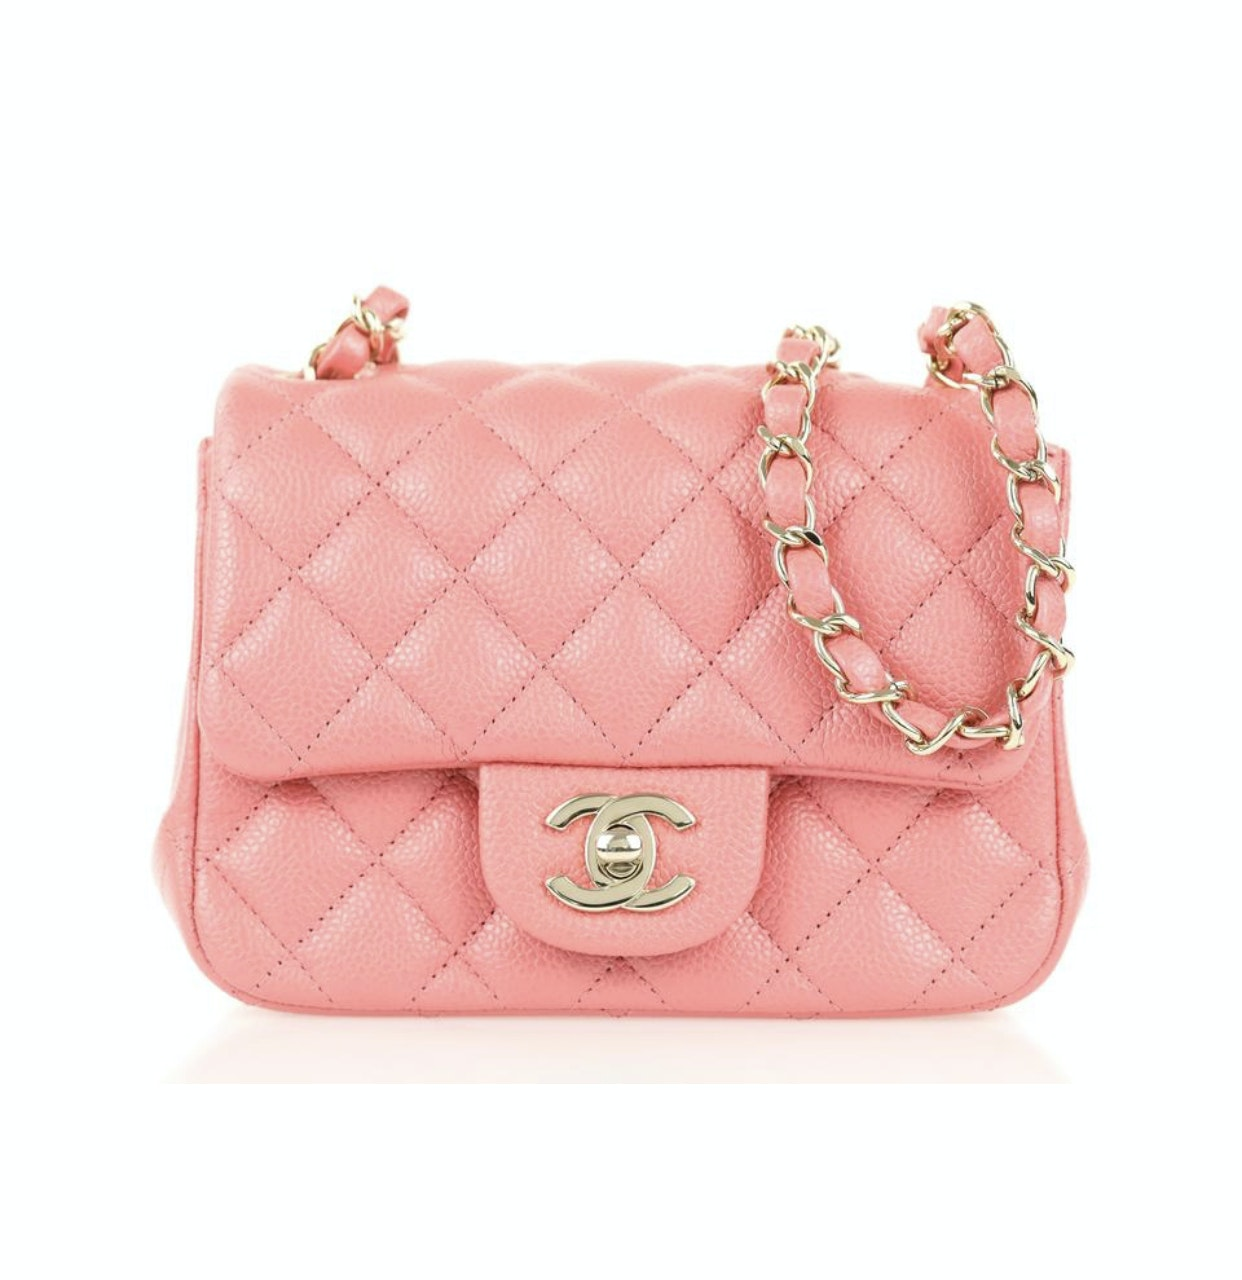 Chanel Square Flap Quilted Caviar Mini Pink